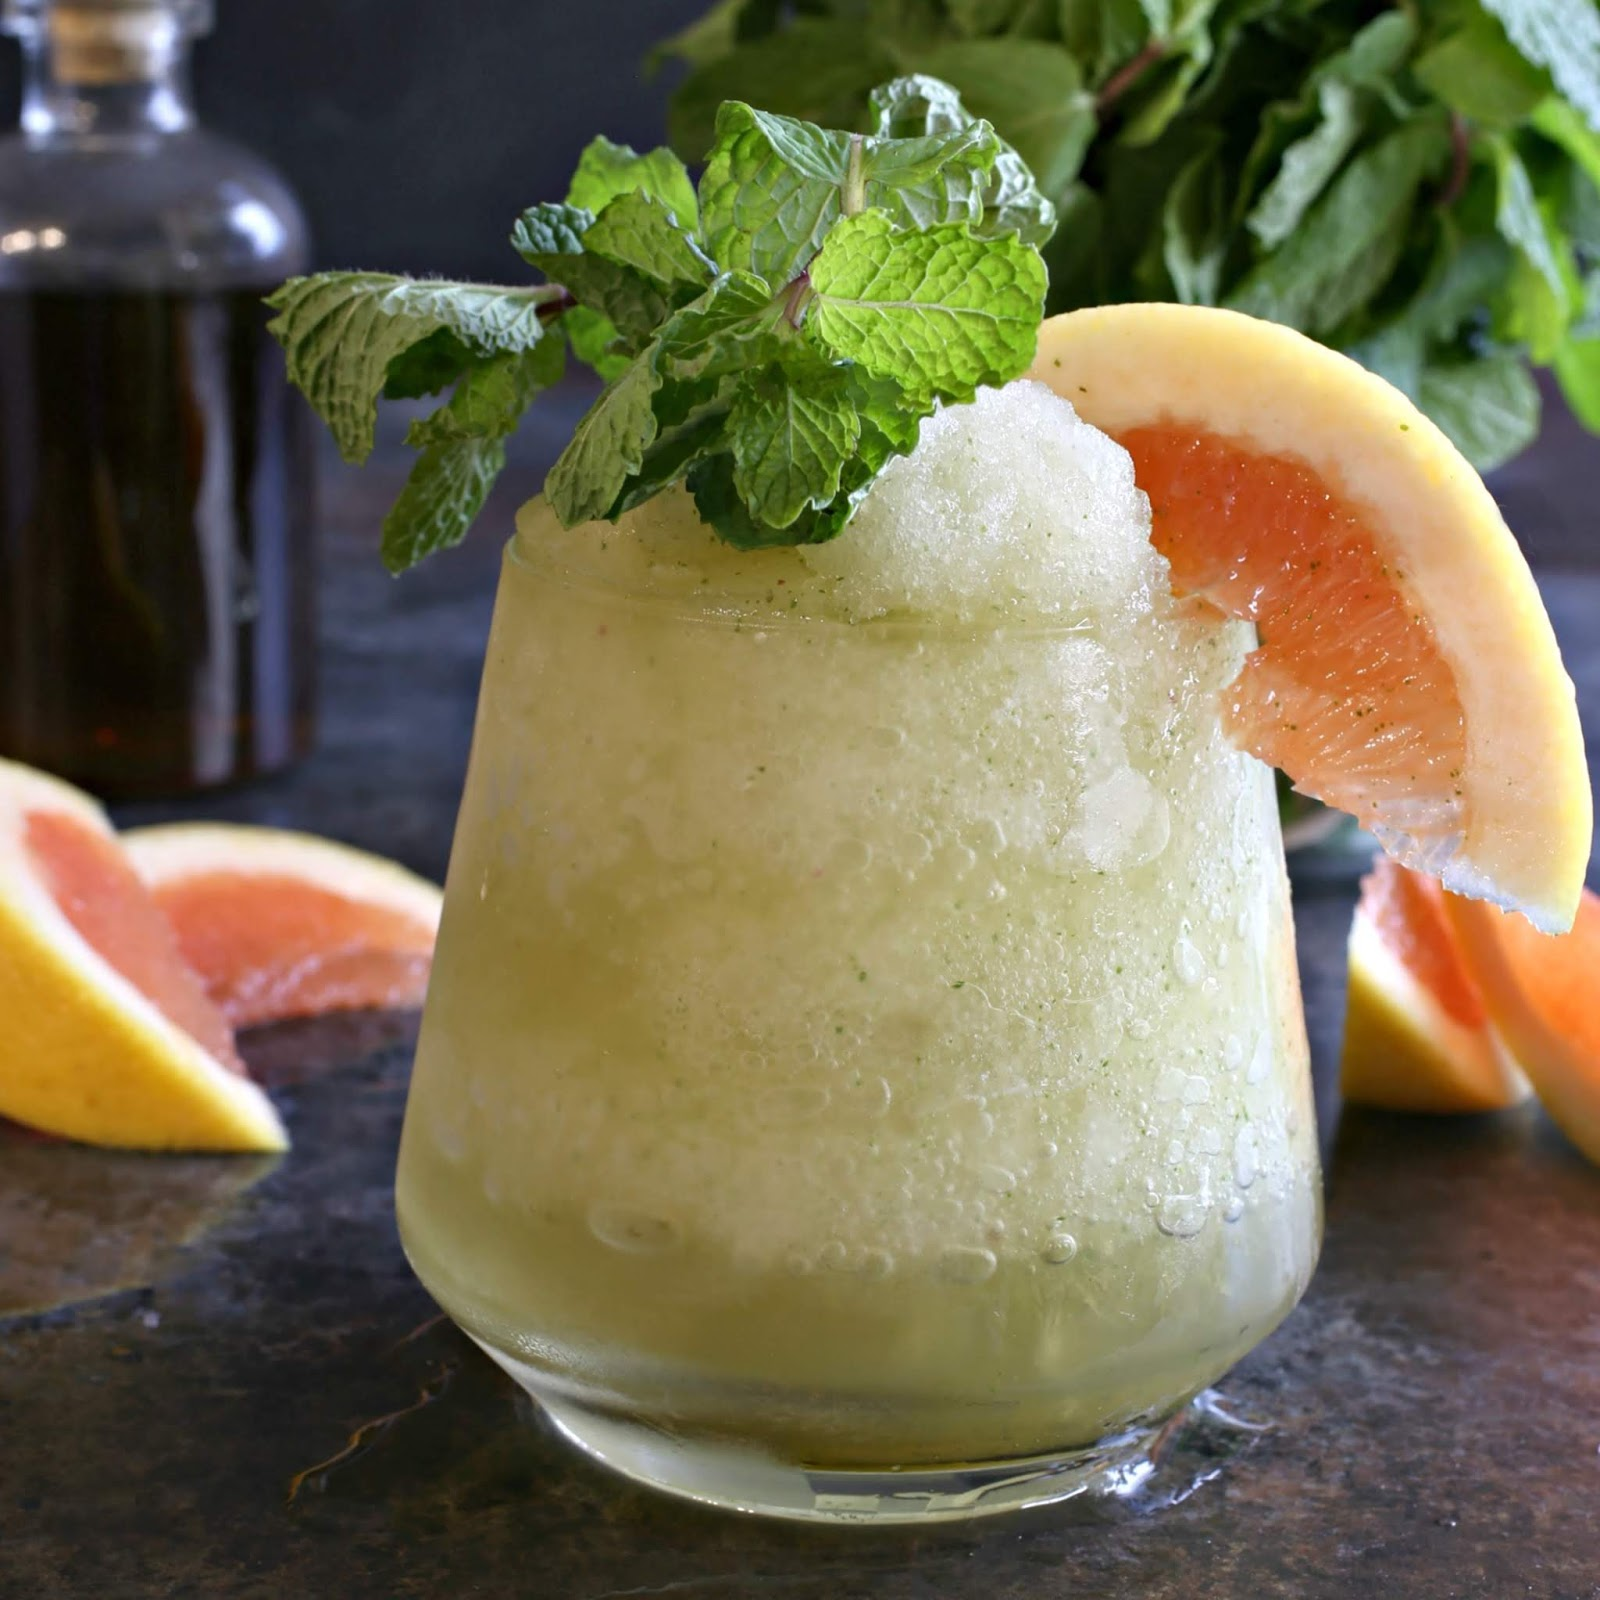 Bourbon cocktail flavored with brown sugar, grapefruit and mint.